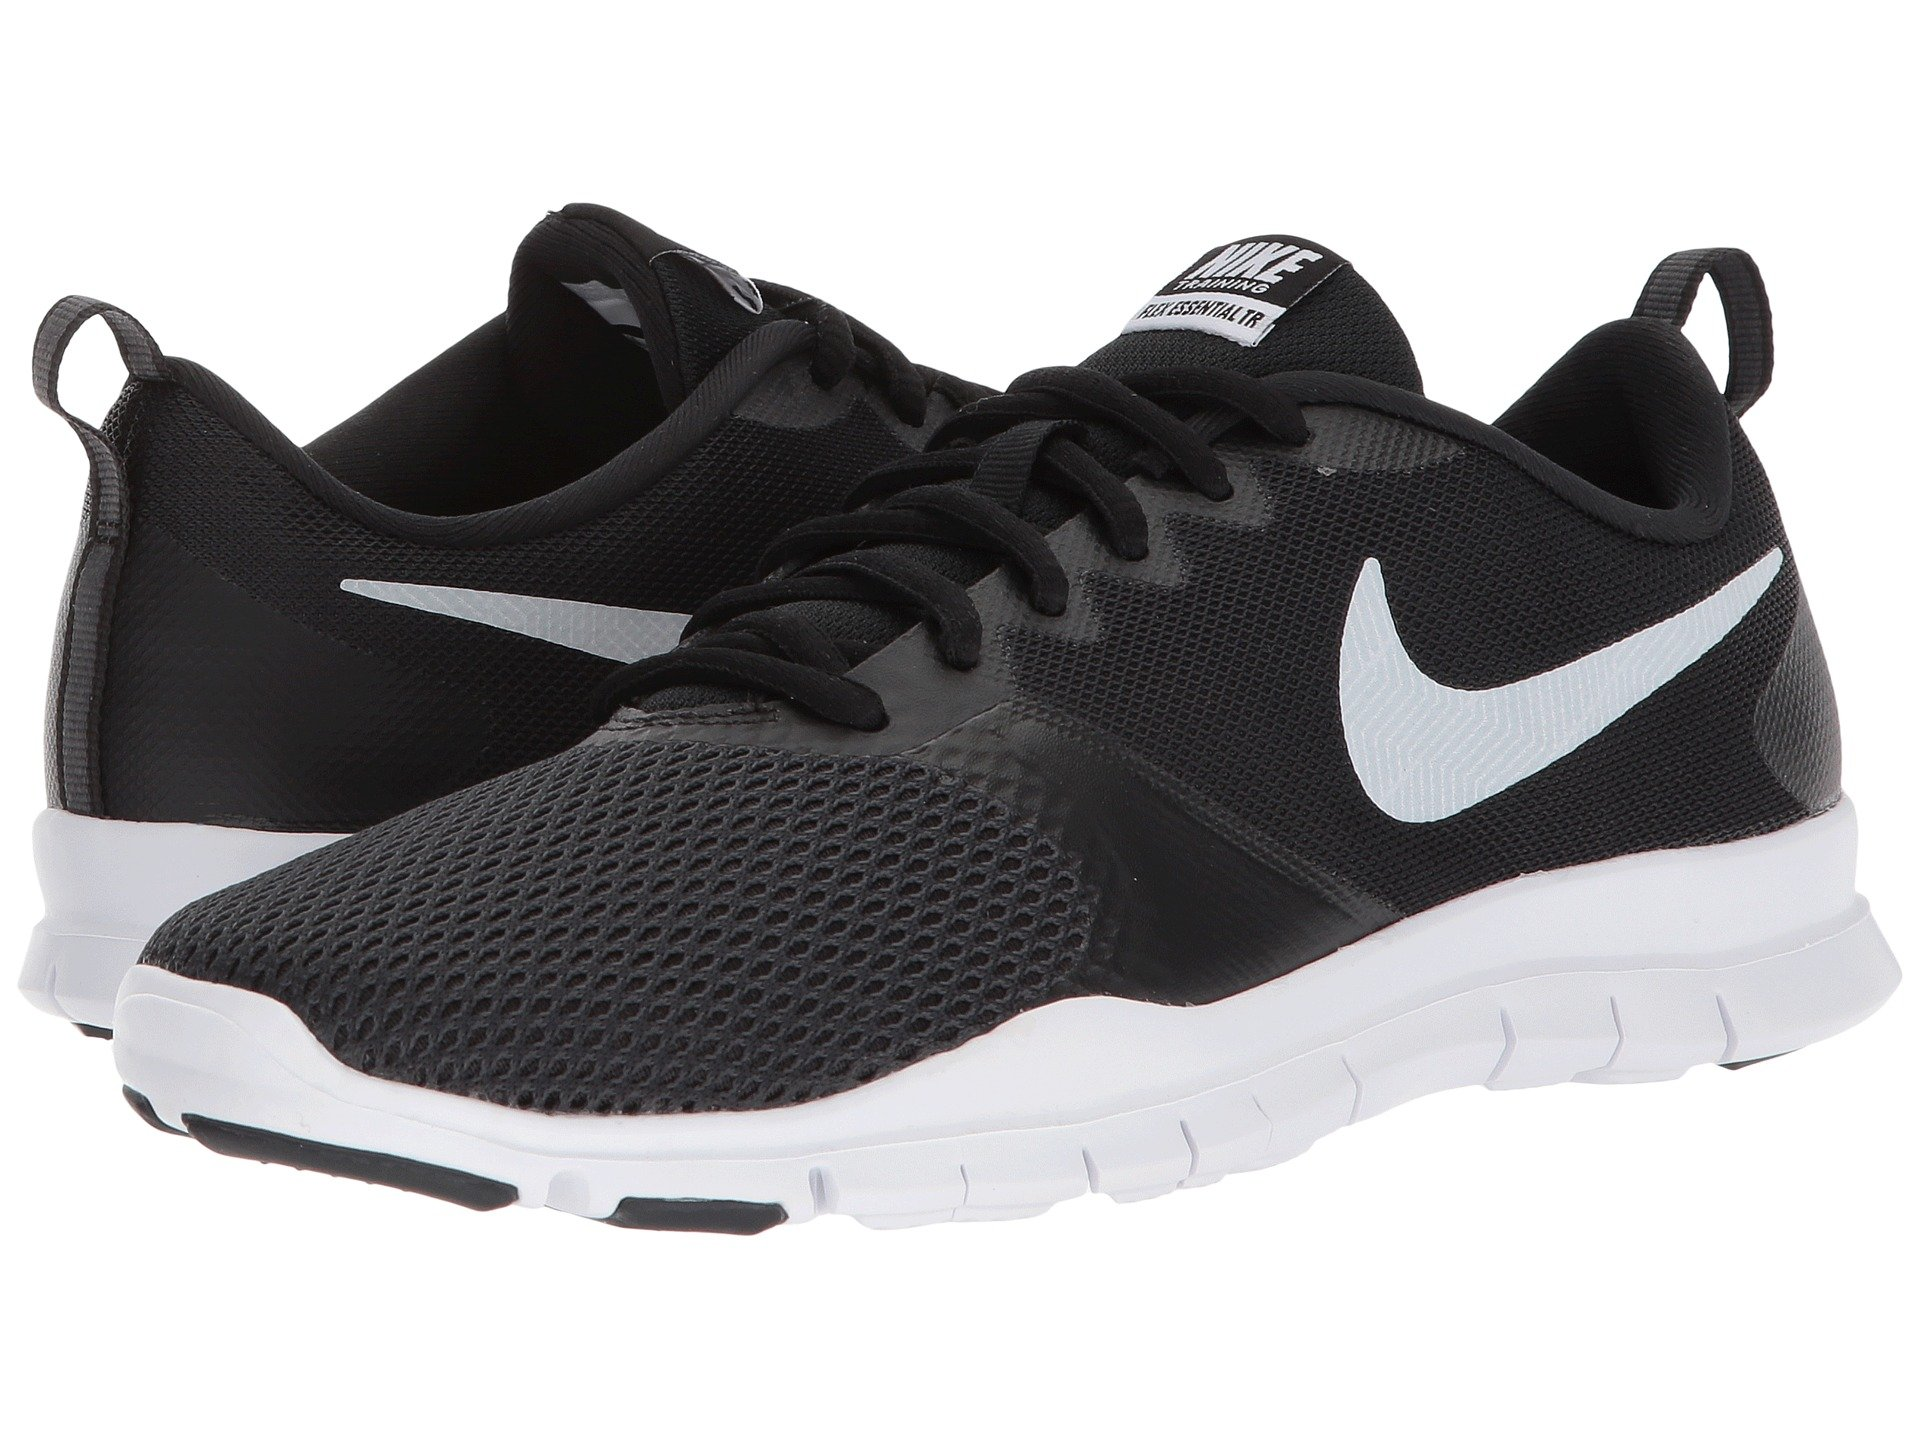 d7c02e26cac Black Black Anthracite White. 654. Nike. Flex Essential TR